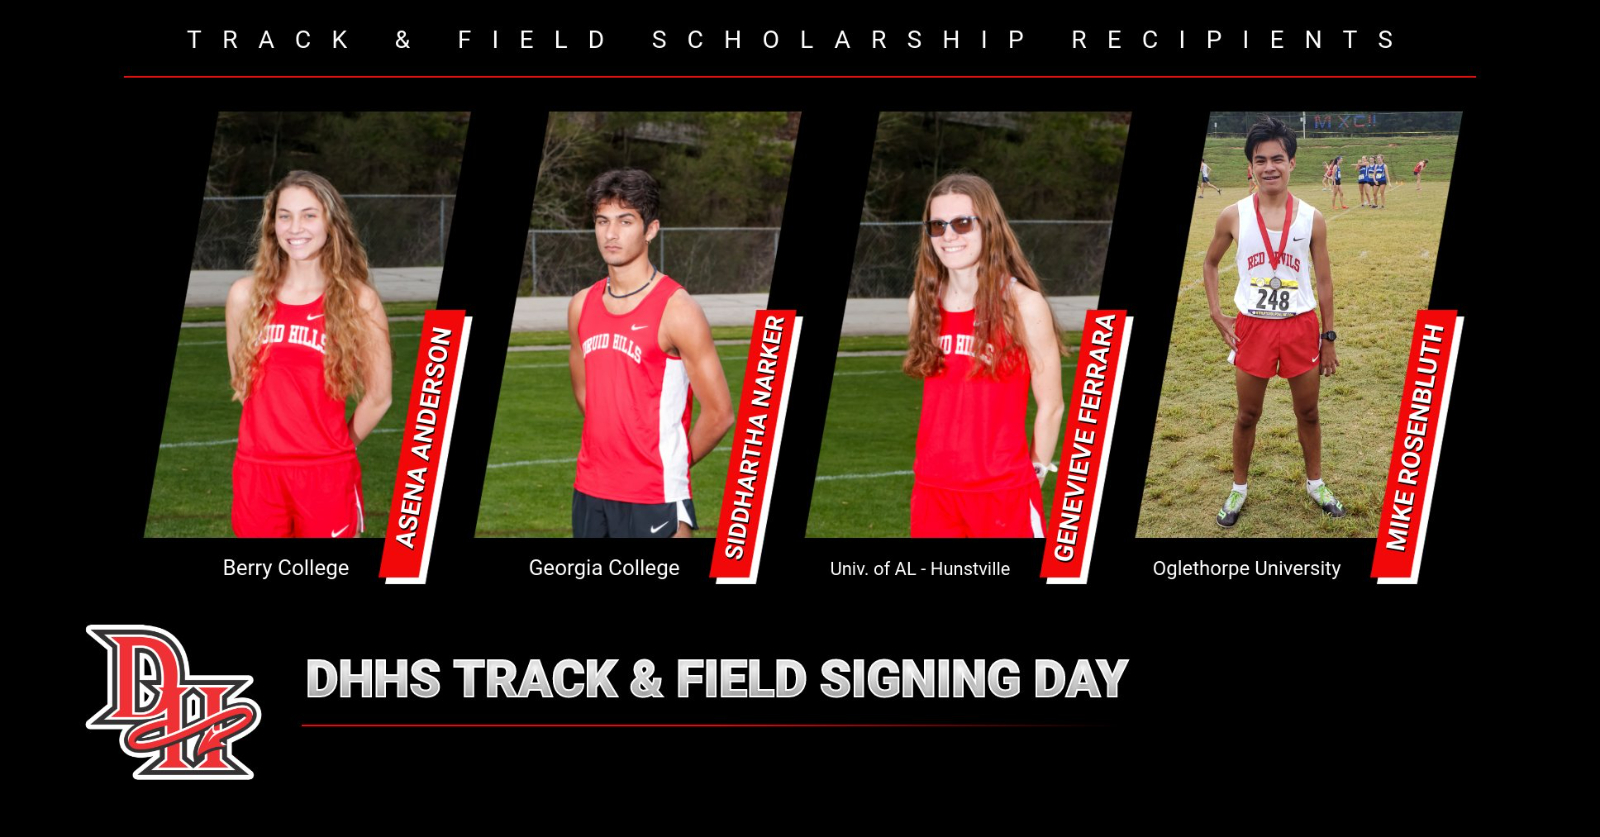 TRACK TEAM EARNS SCHOLARSHIPS